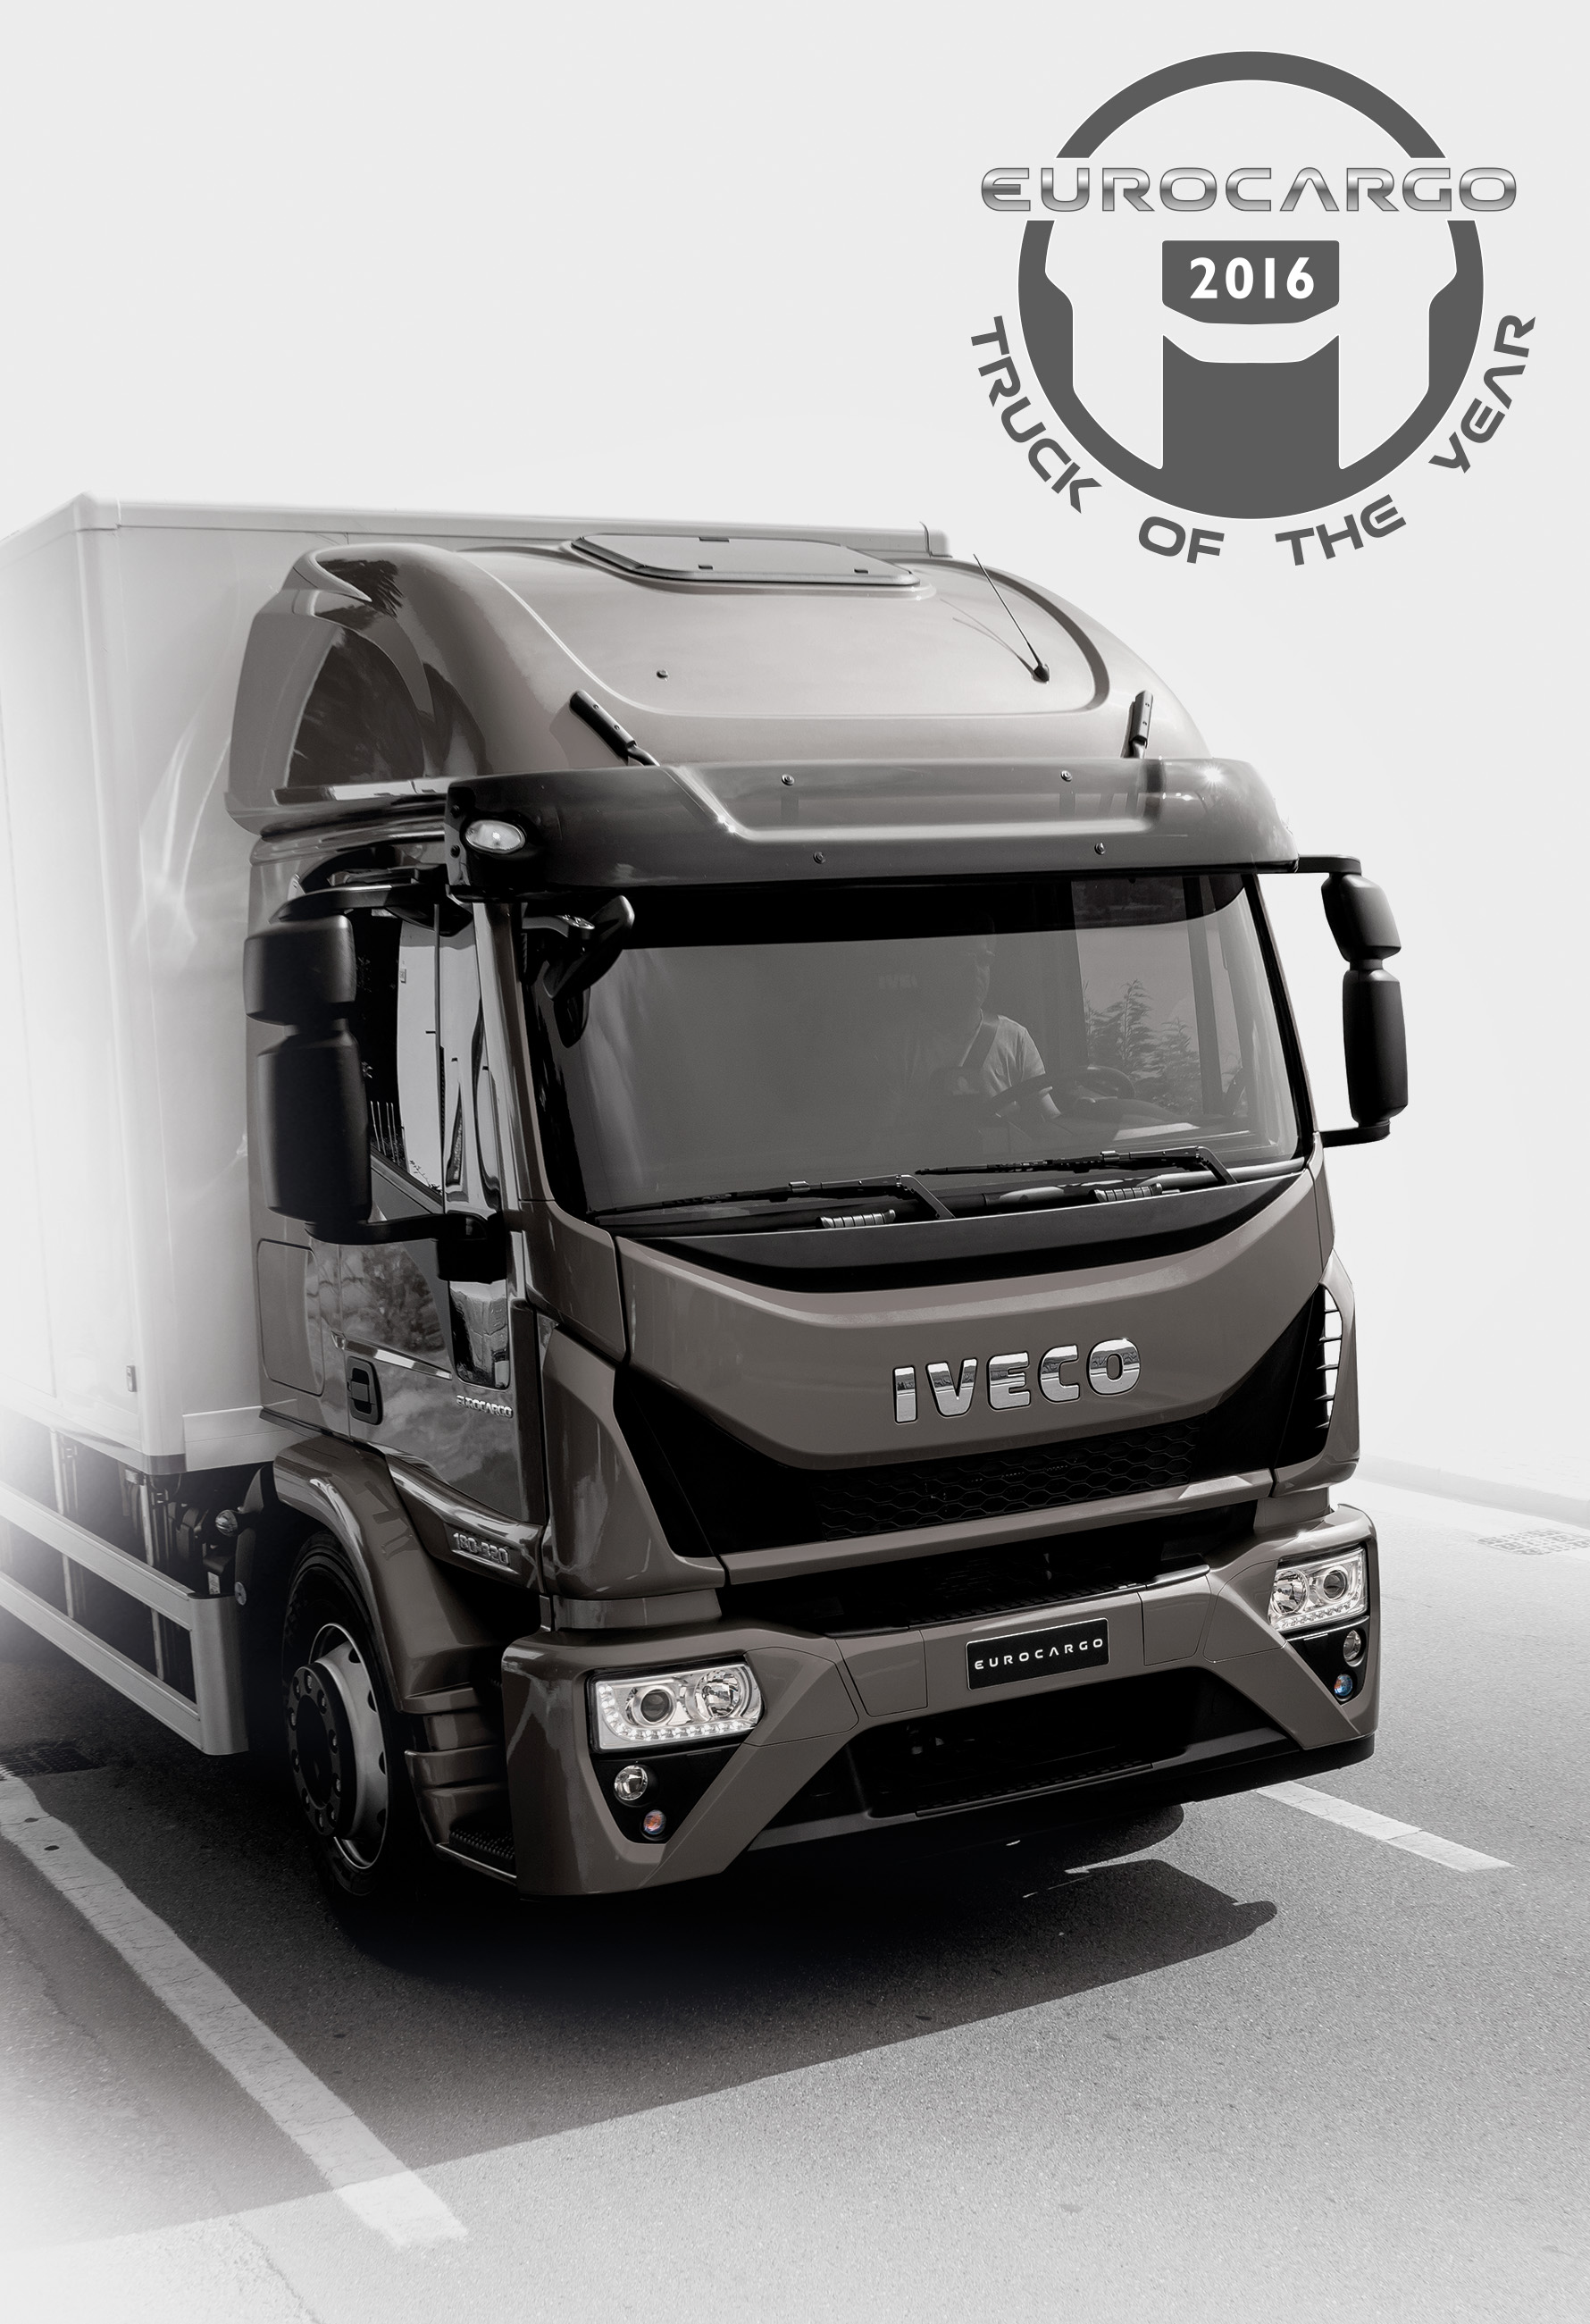 Iveco Eurocargo 2016 International Truck Of The Year Market Engineering